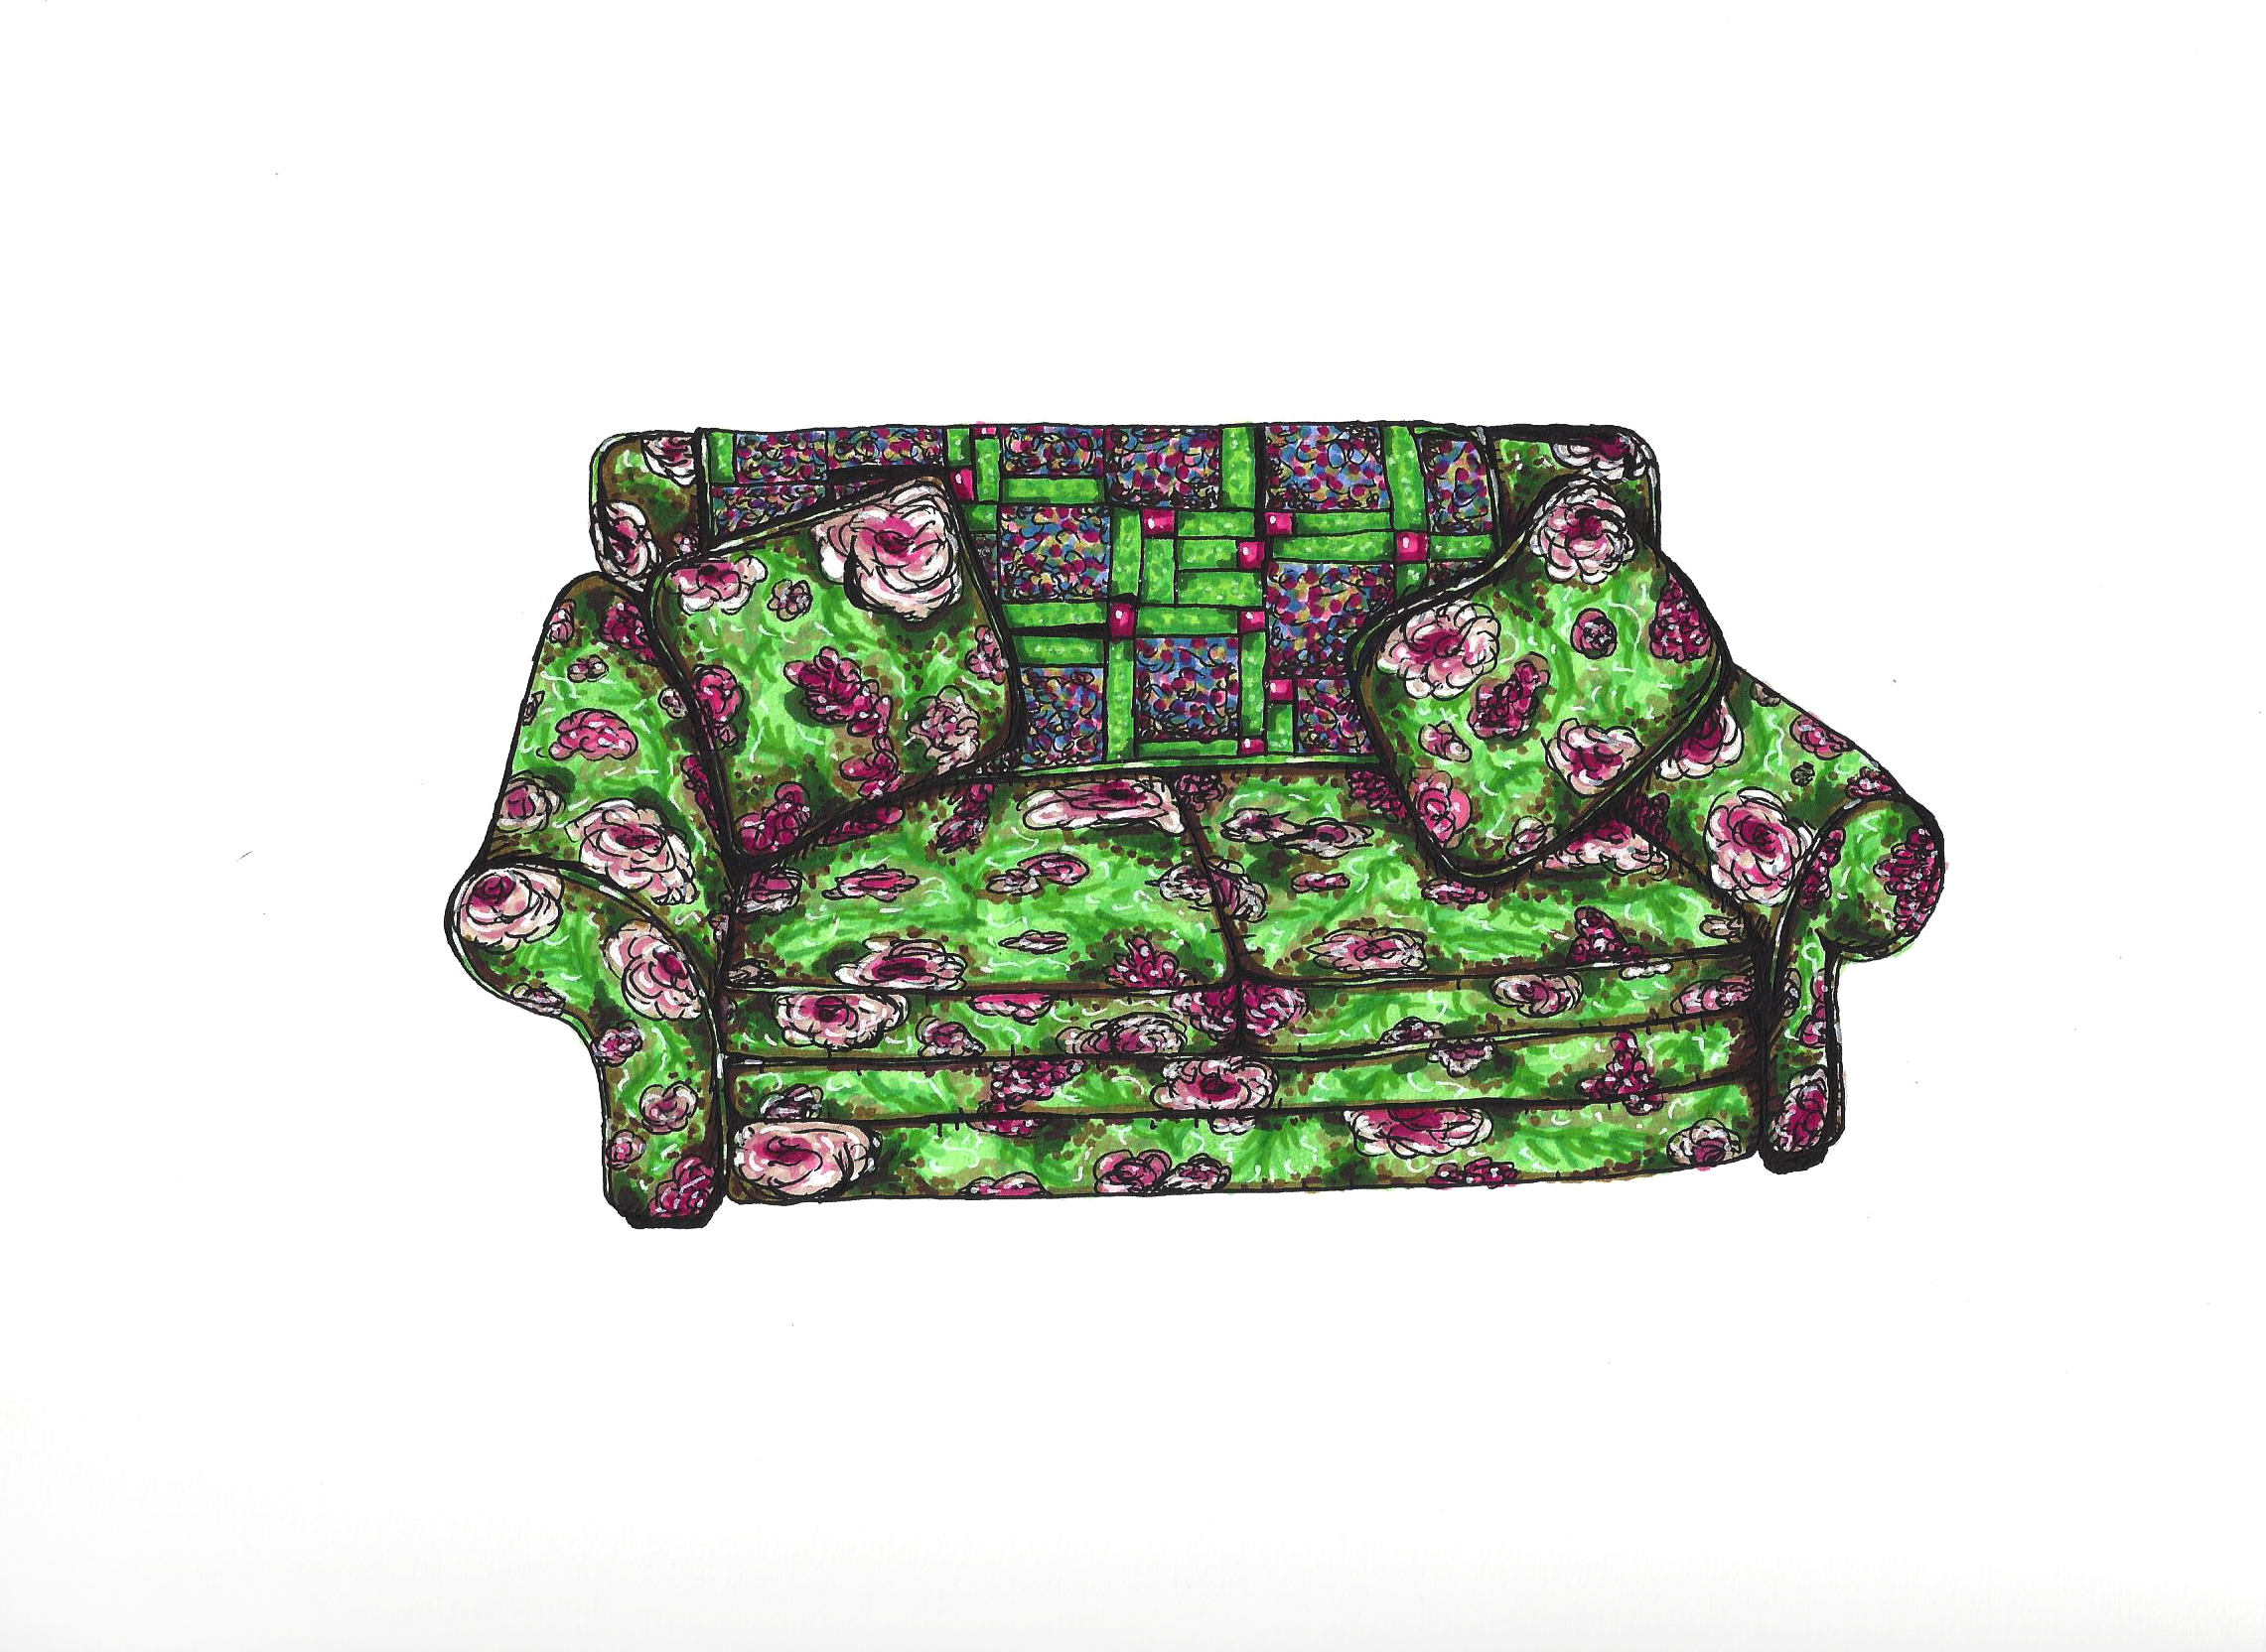 Nana's Green Floral Couch and Quilt